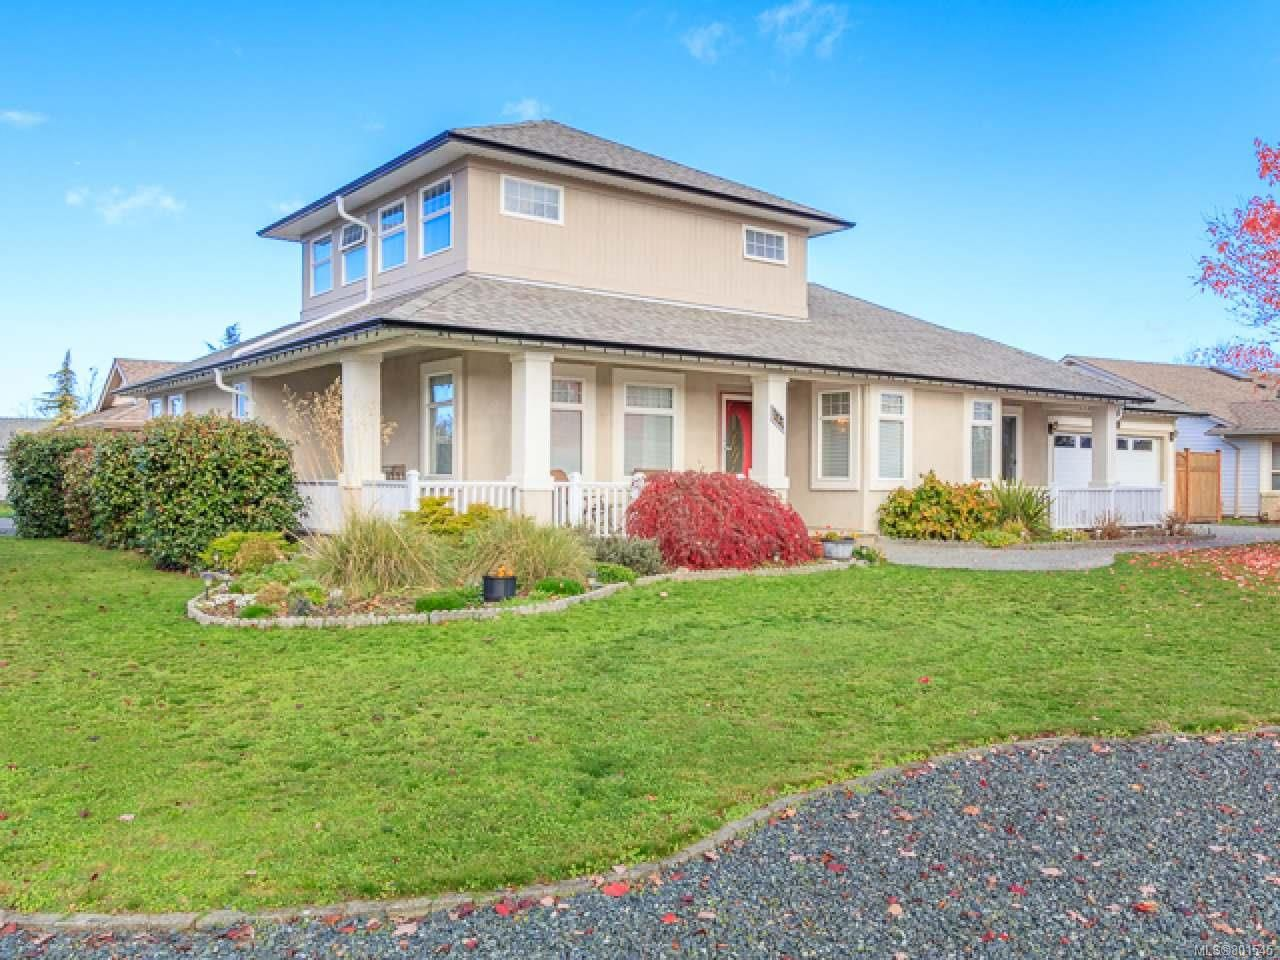 Main Photo: 247 Mulberry Pl in PARKSVILLE: PQ Parksville House for sale (Parksville/Qualicum)  : MLS®# 801545